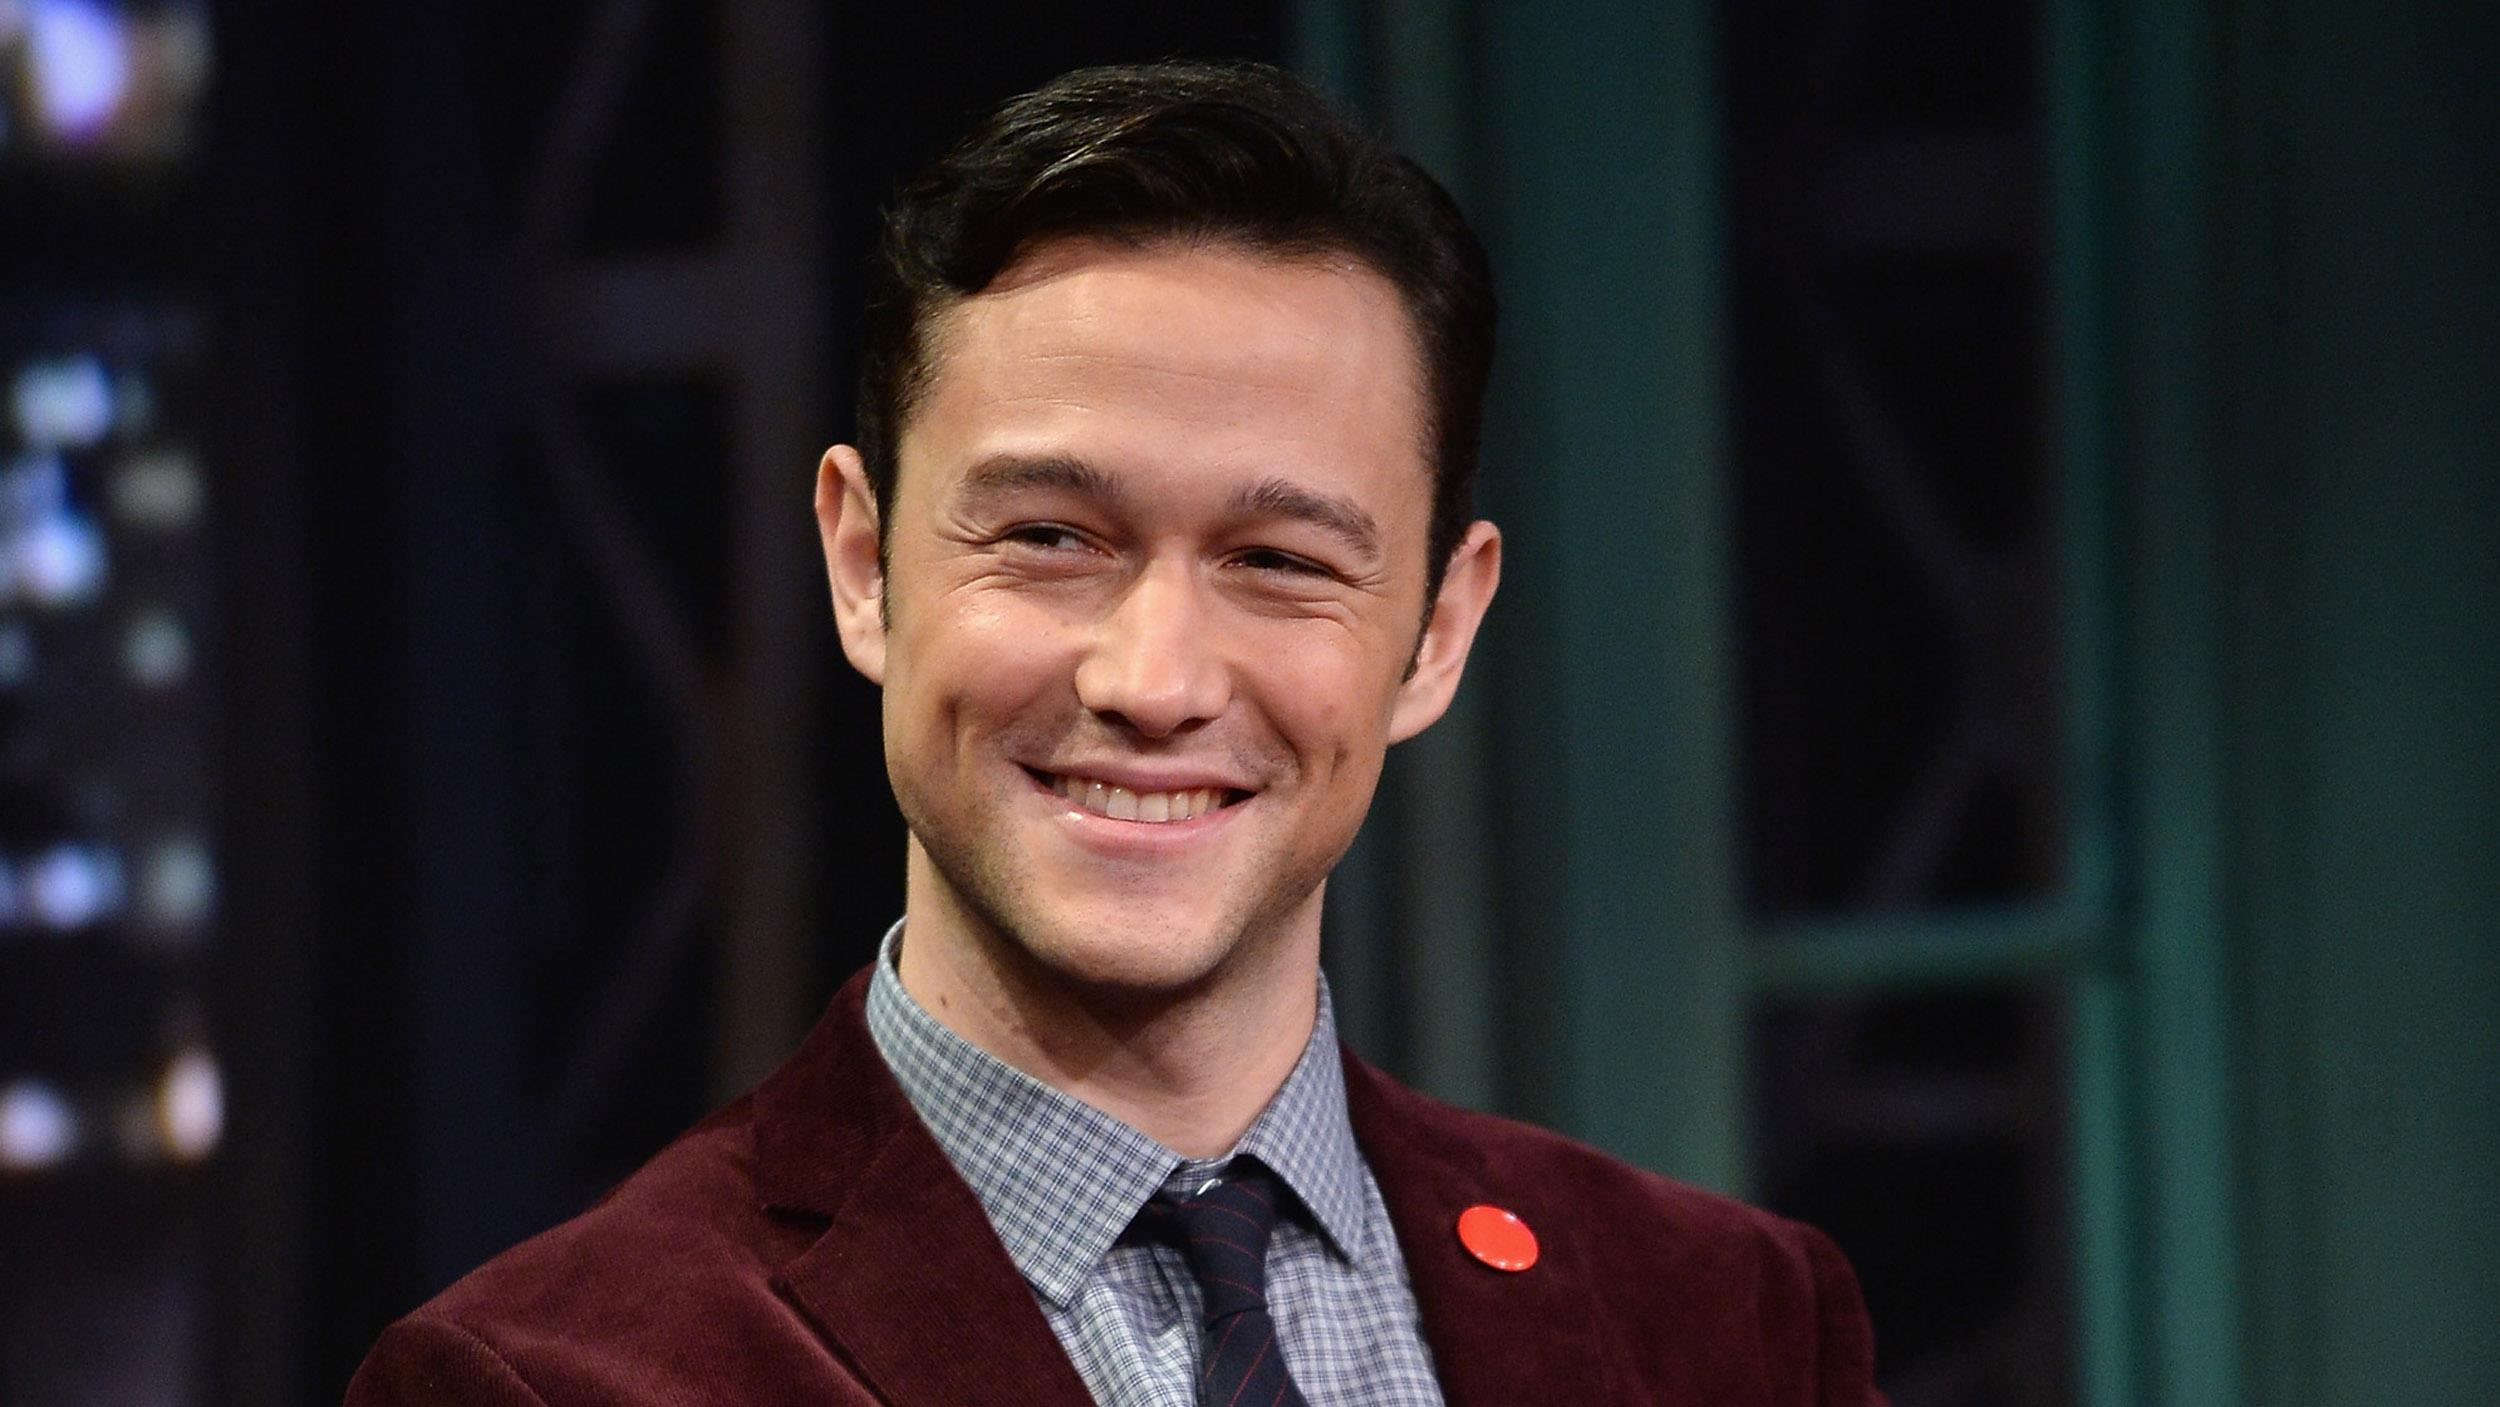 Joseph Gordon Levitt: Joseph Gordon-Levitt Will Produce And Star In 'Fraggle